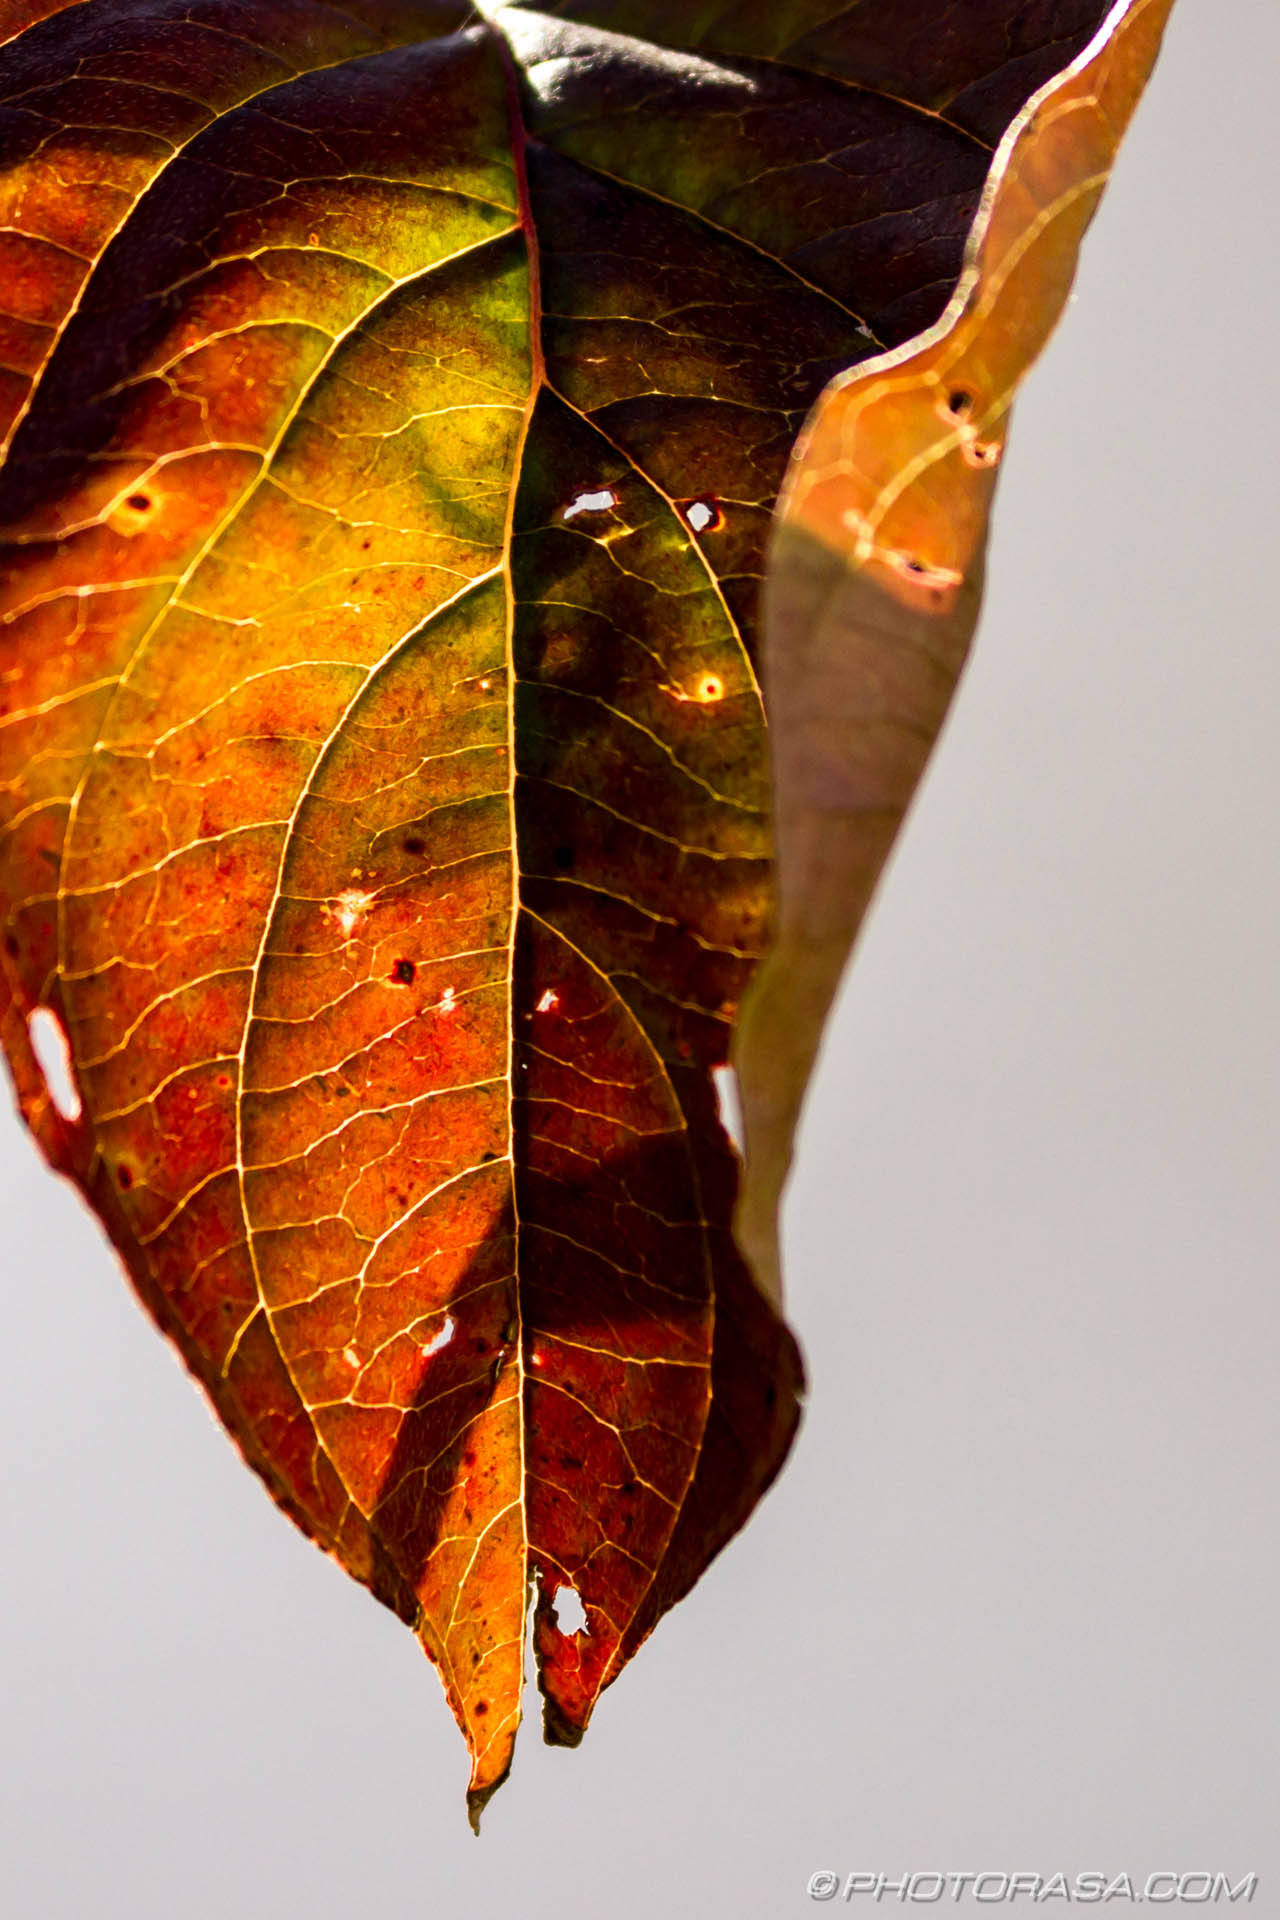 http://photorasa.com/autumn-leaves/curled-leaf-with-greenyellowred-and-brown-tones/